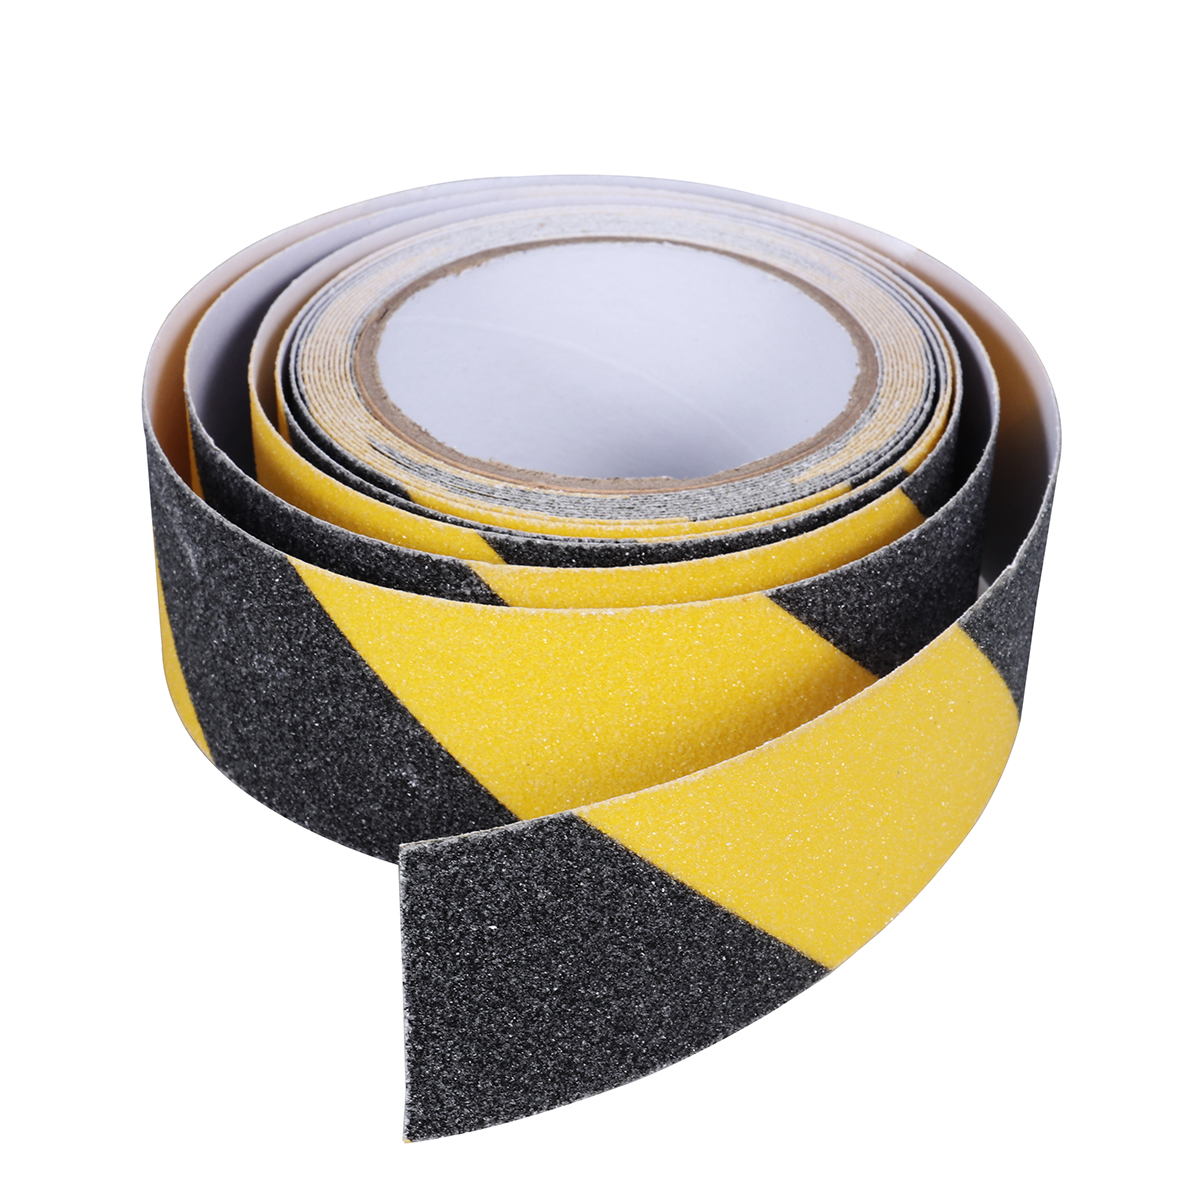 42 Pcs Anti Slip Tape Grip Adhesive Backed Non Slip Safety Floor Steps Trailer